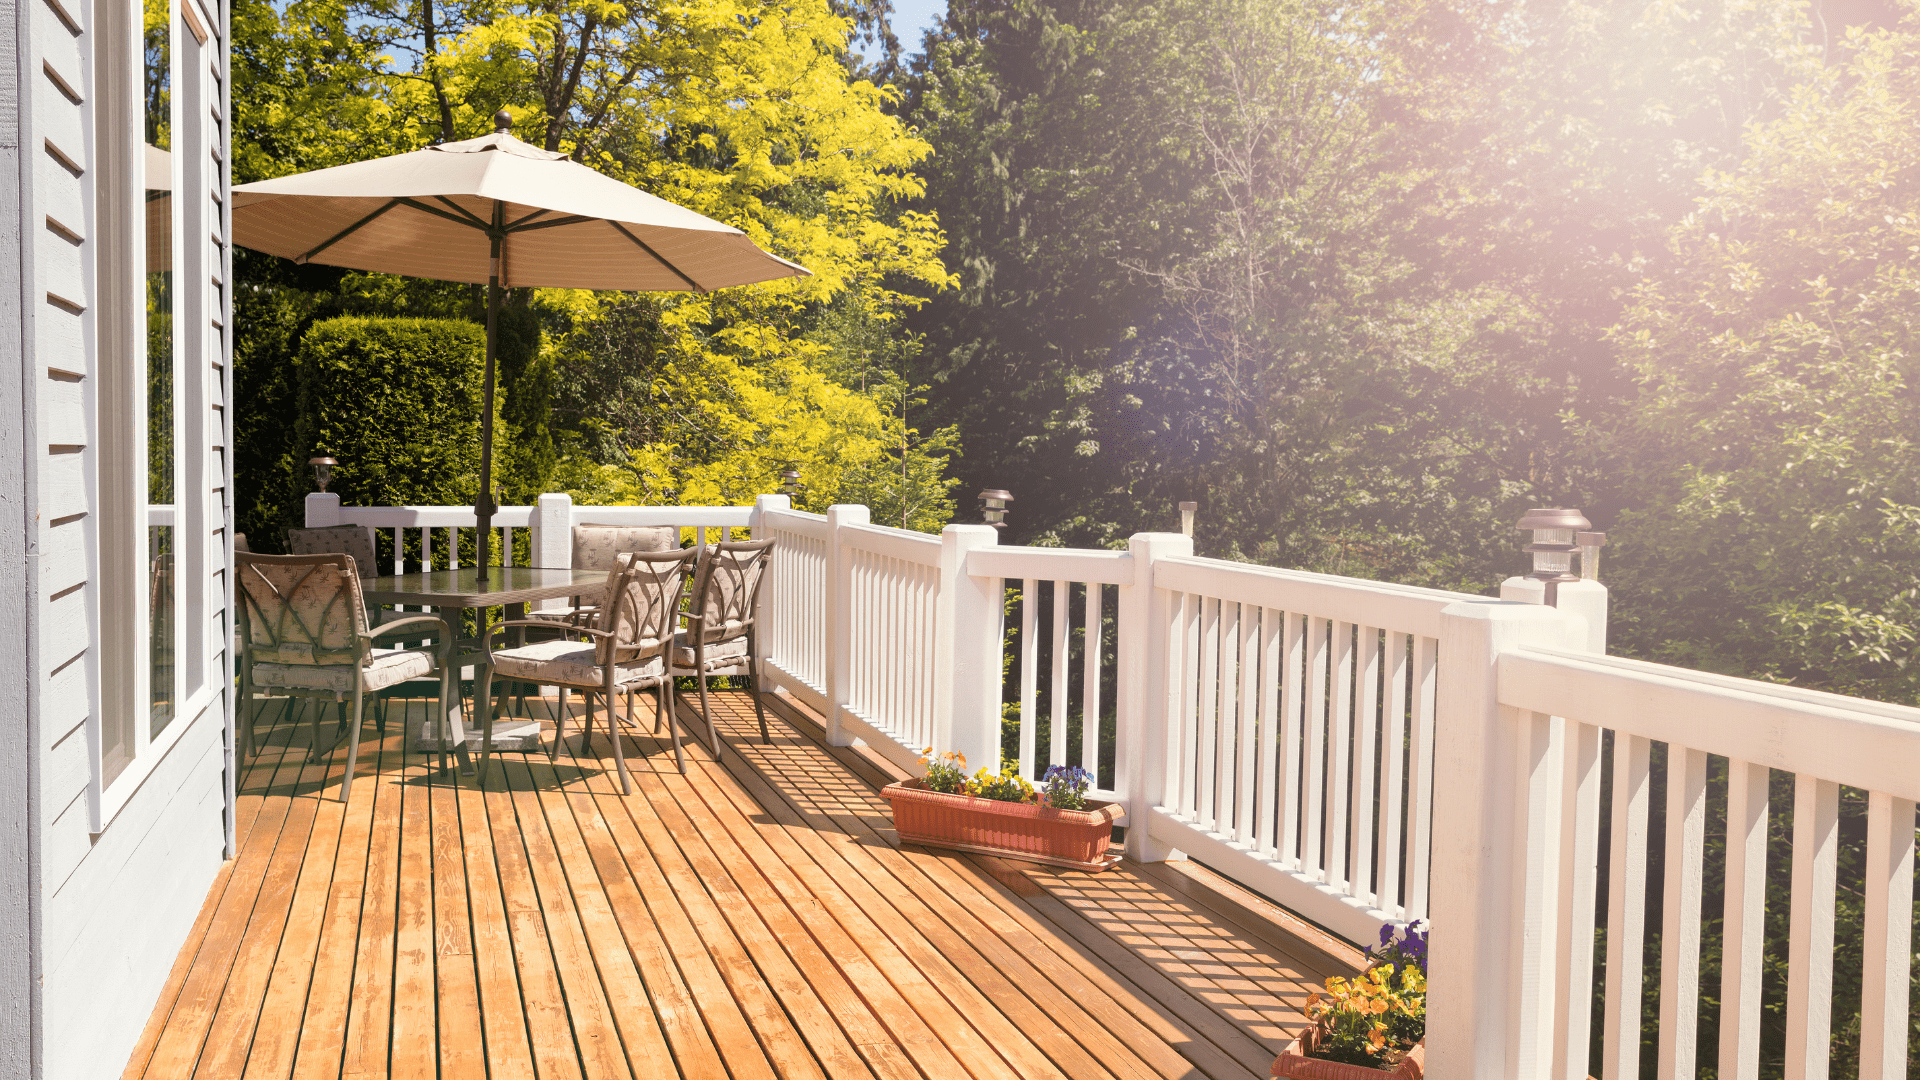 What you need to know about Decks & Balconies